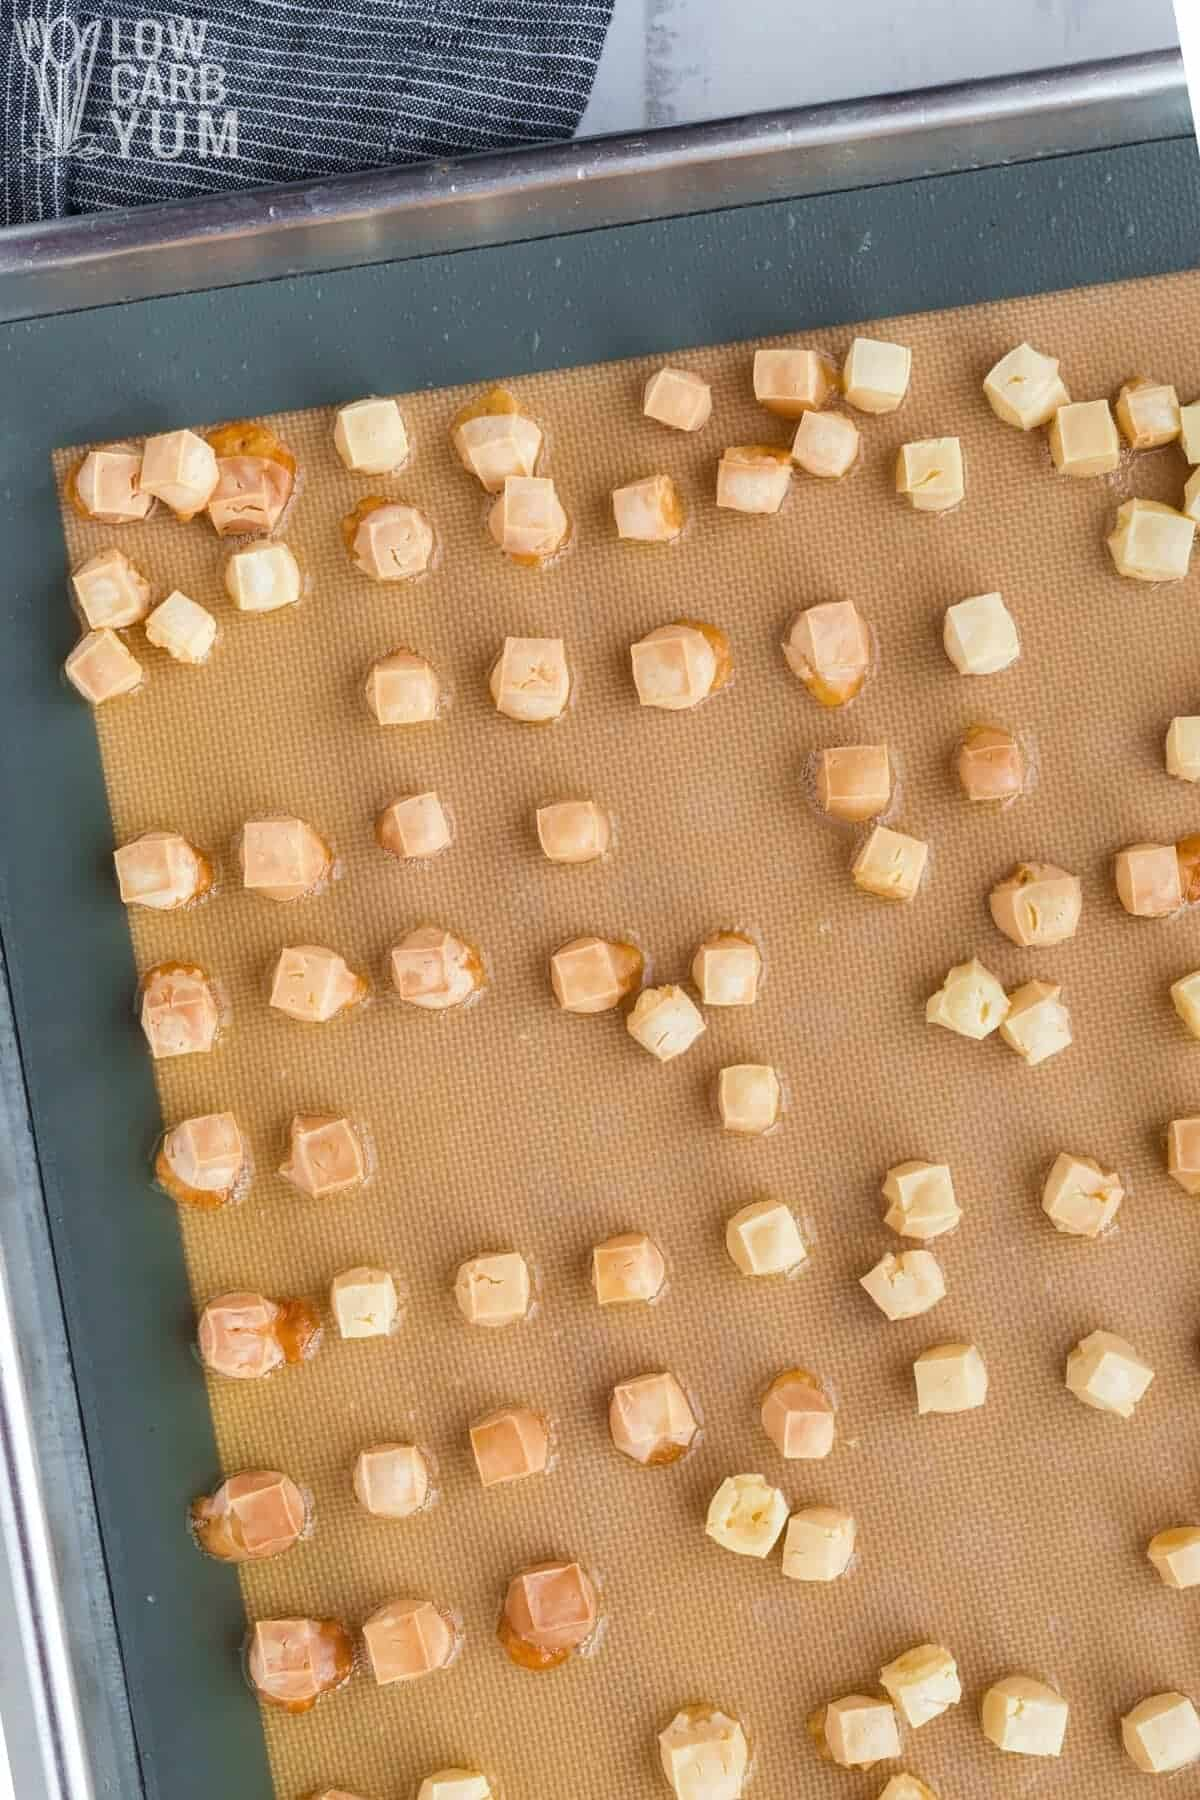 baked cheese cubes after baking on lined sheet pan